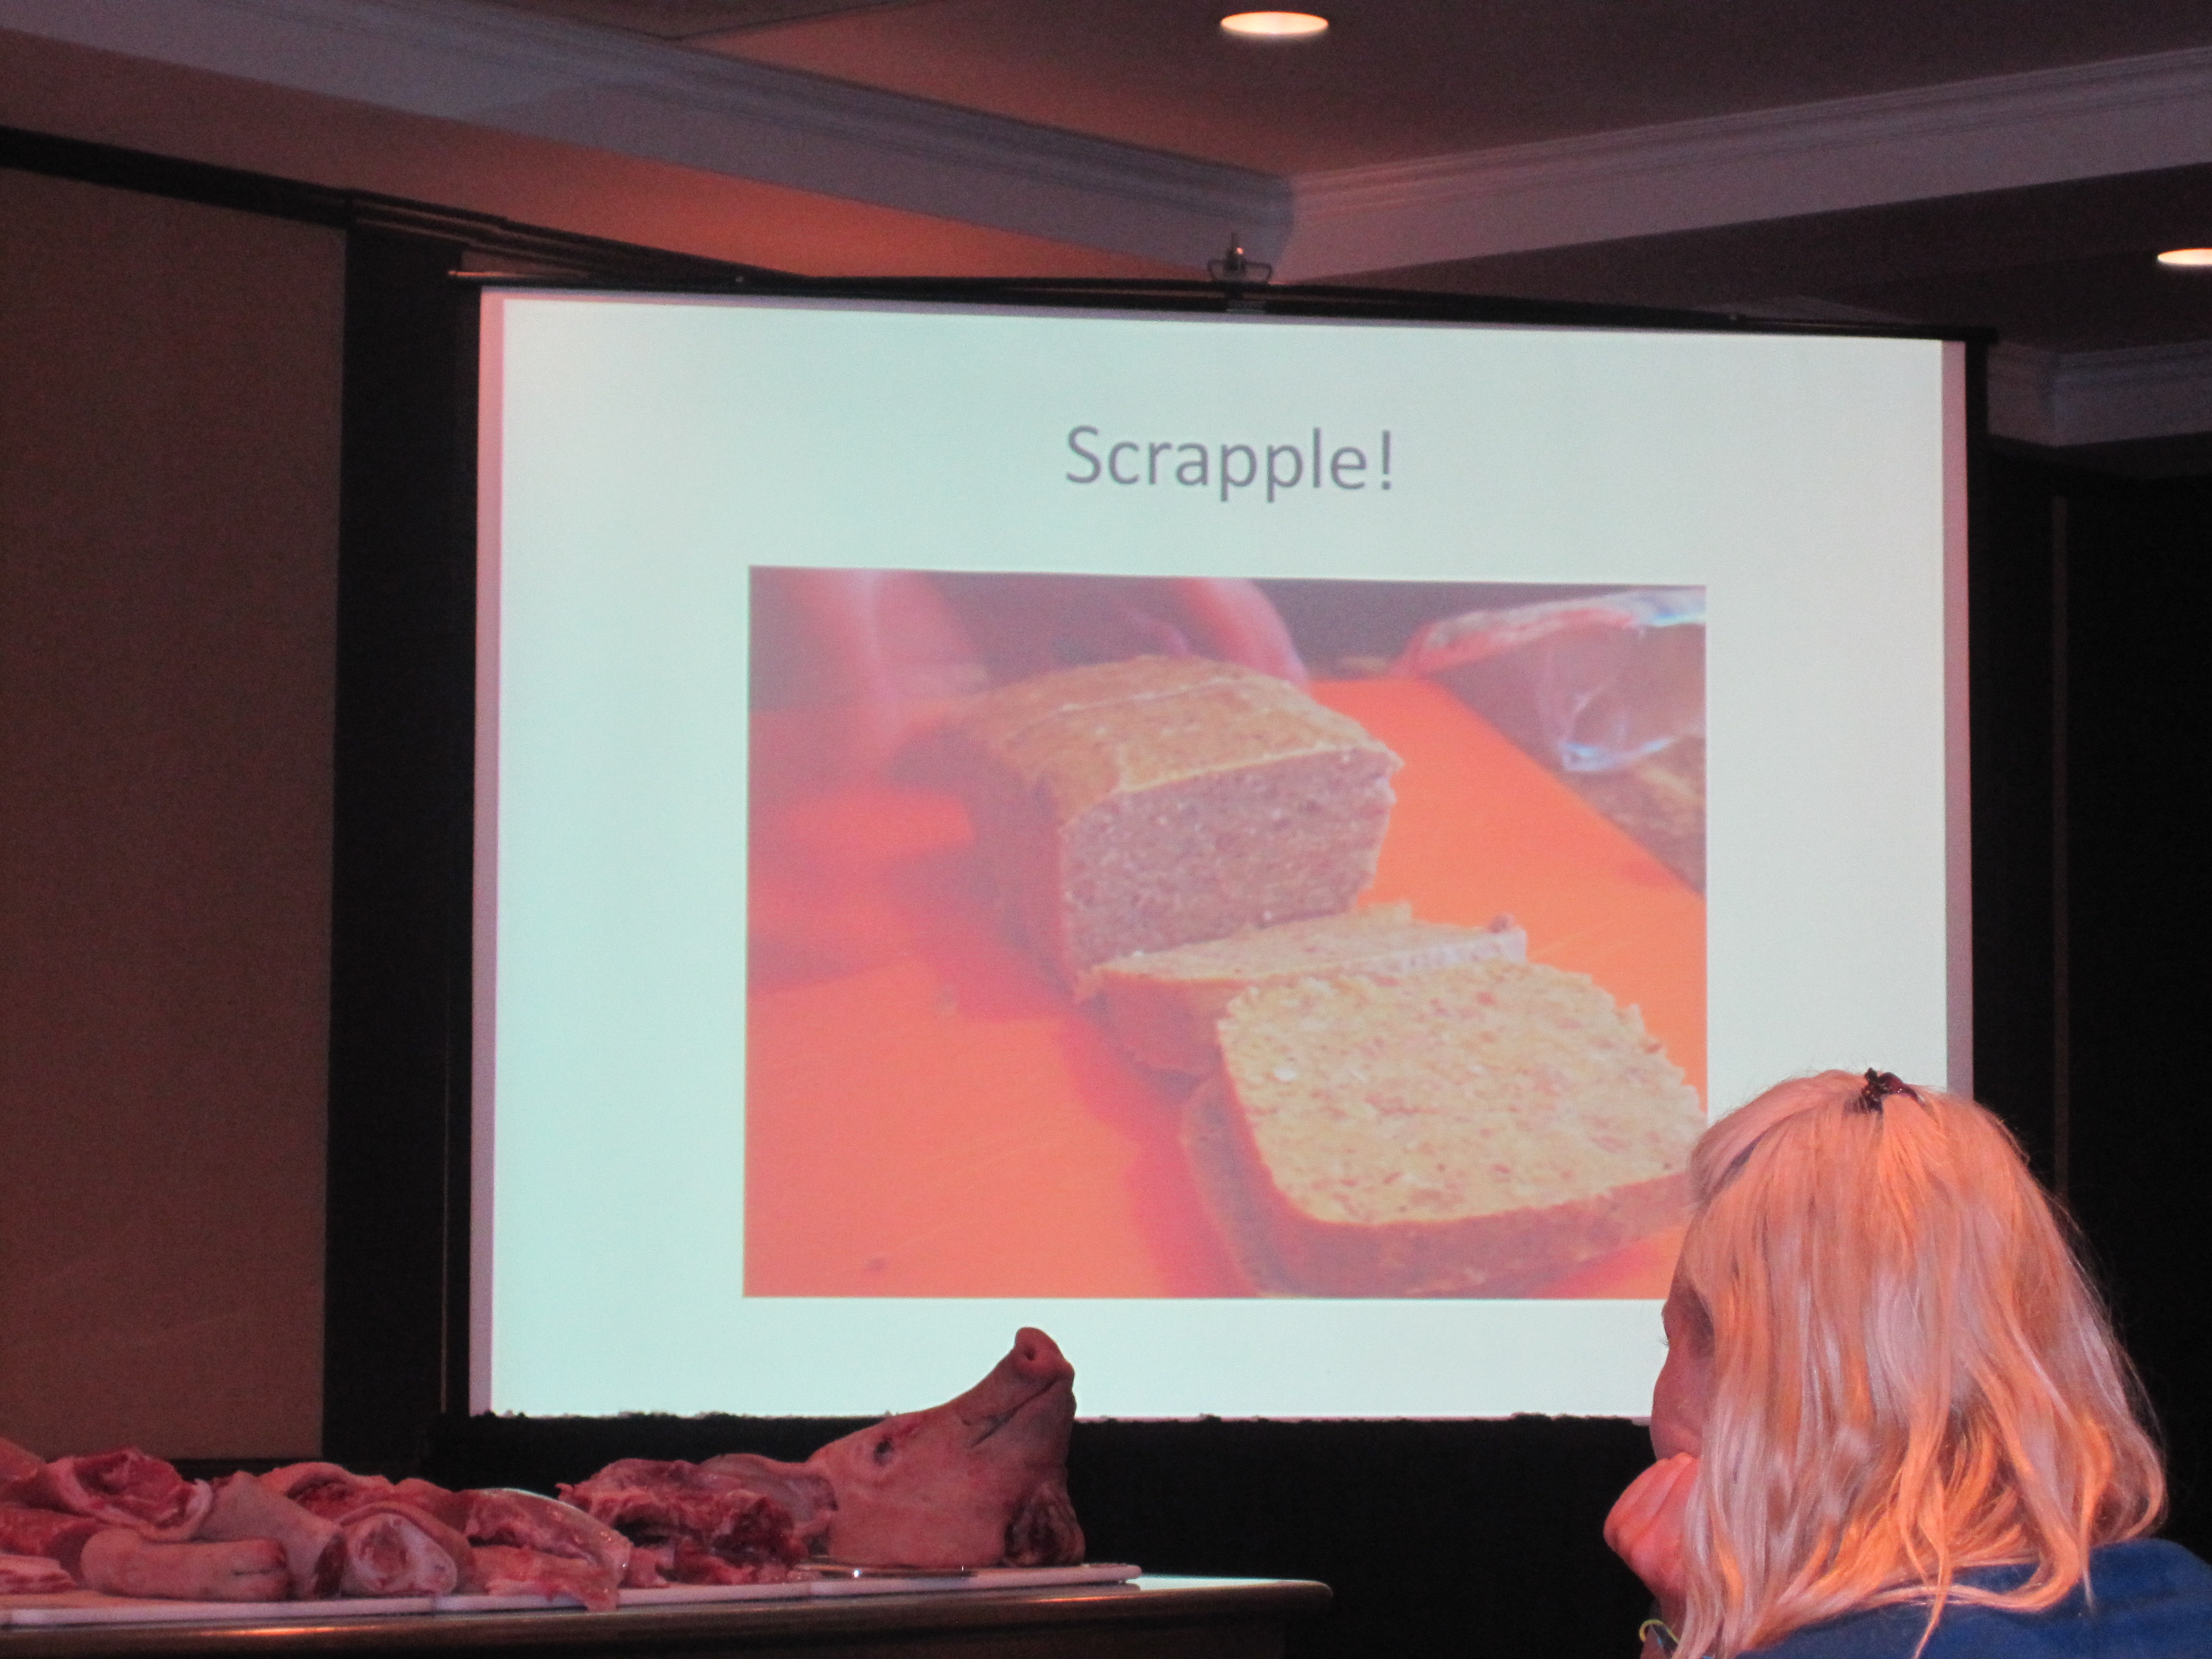 Scrapple is a dish that's made with leftover parts of the pig, like the head, liver, and kidney. It's all braised slowly, then blended together to become a sort of country pate.